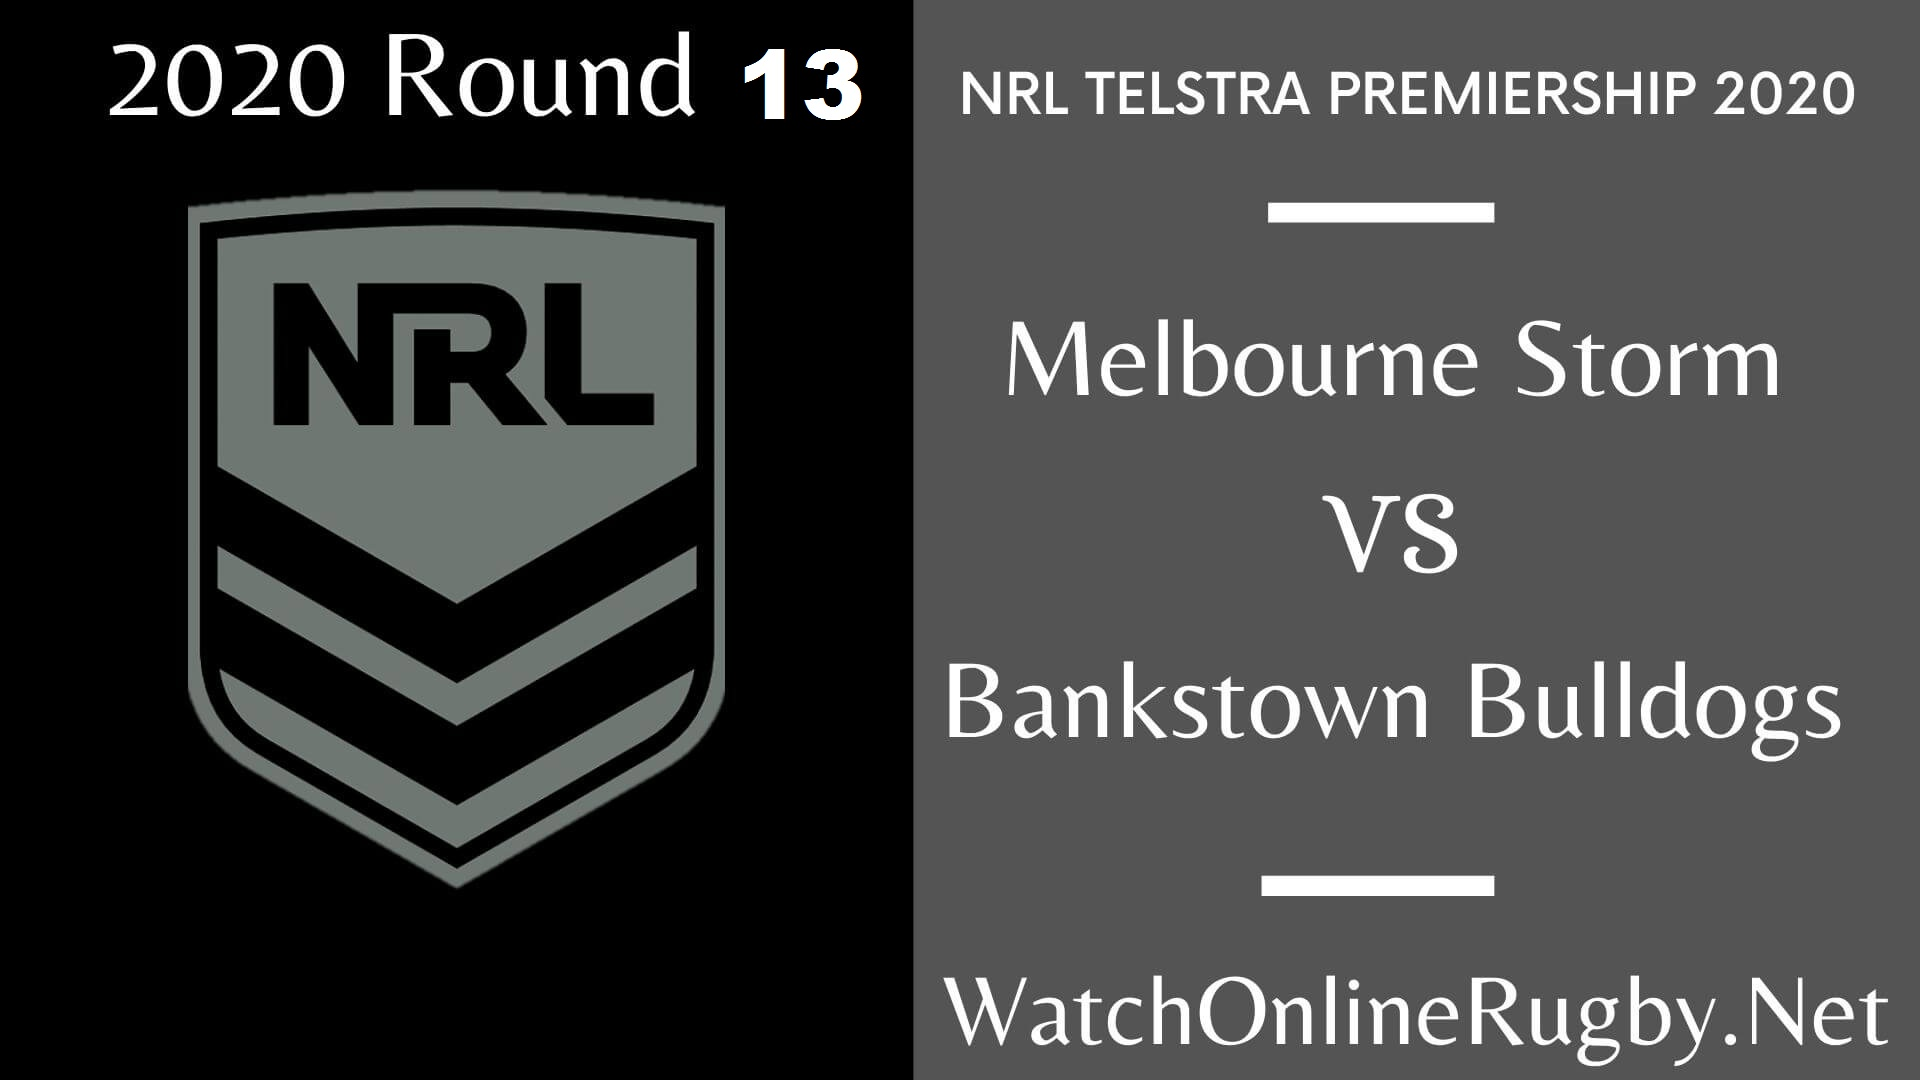 Melbourne Storm Vs Bankstown Bulldogs Highlights 2020 Round 13 NRL Rugby